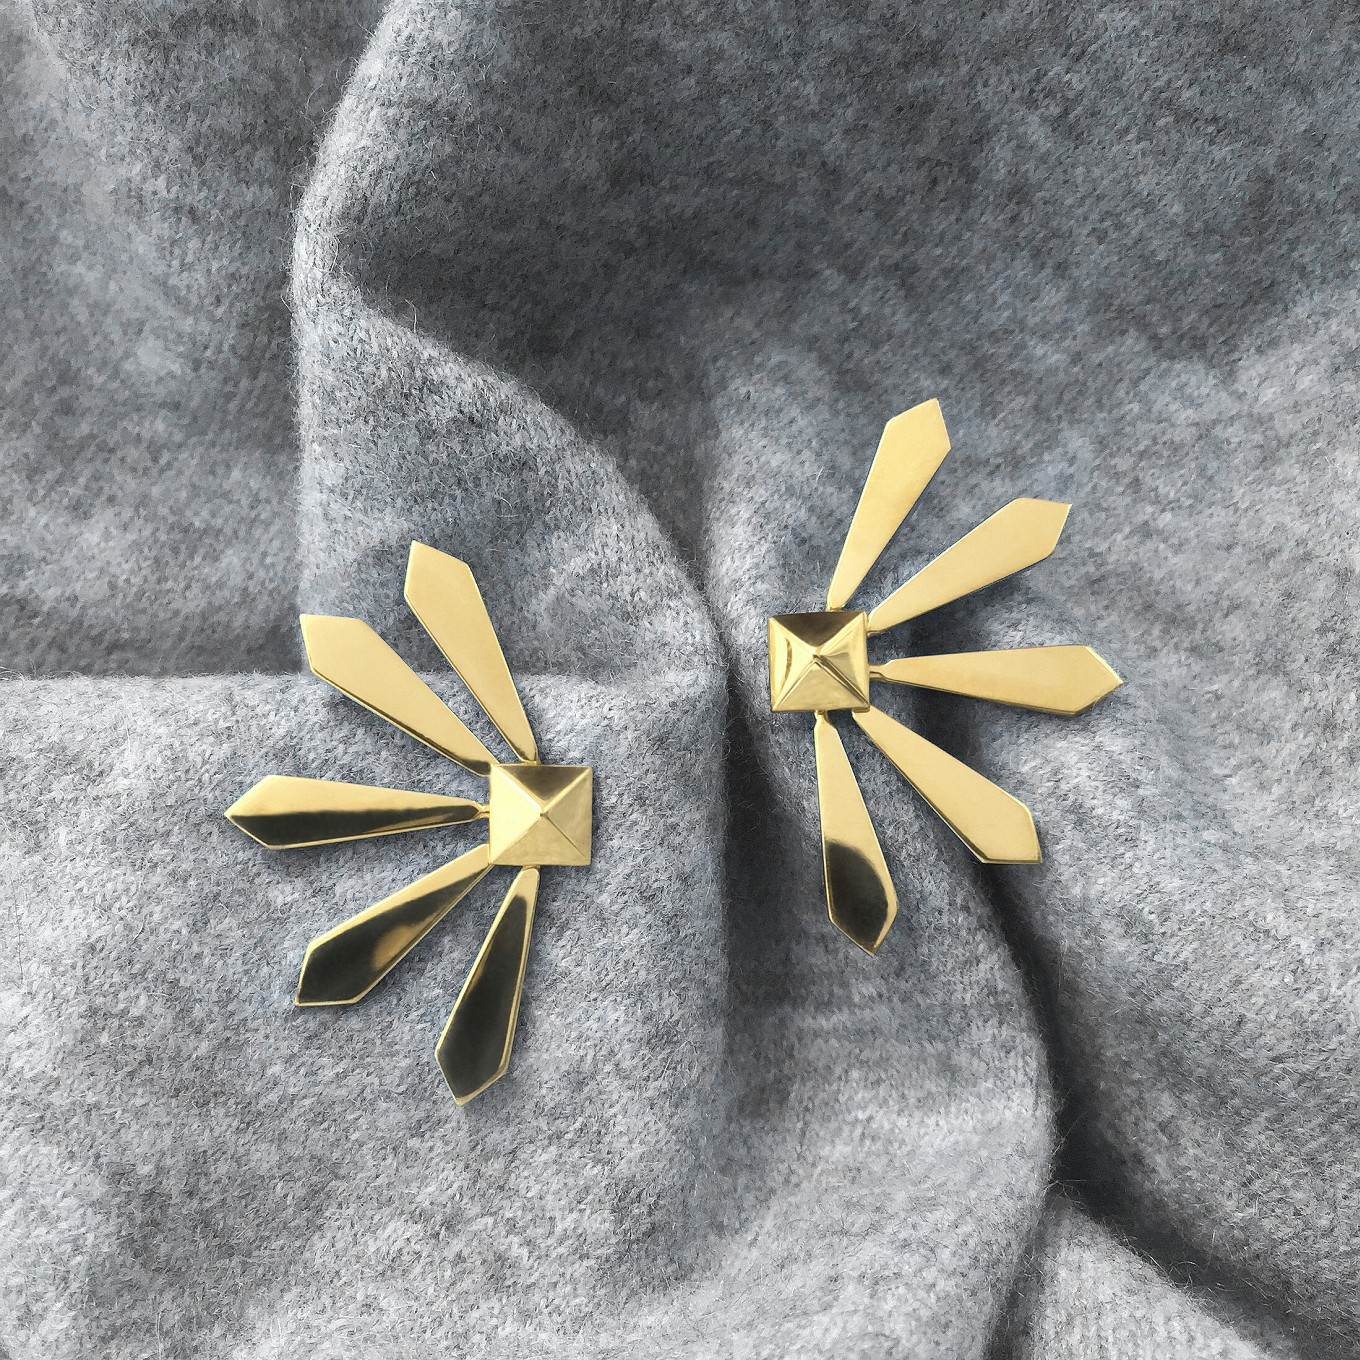 YELLOW GOLD FLARE EARRING JACKETSPAIRED WITH PYRAMID STUDS IN YELLOW GOLD